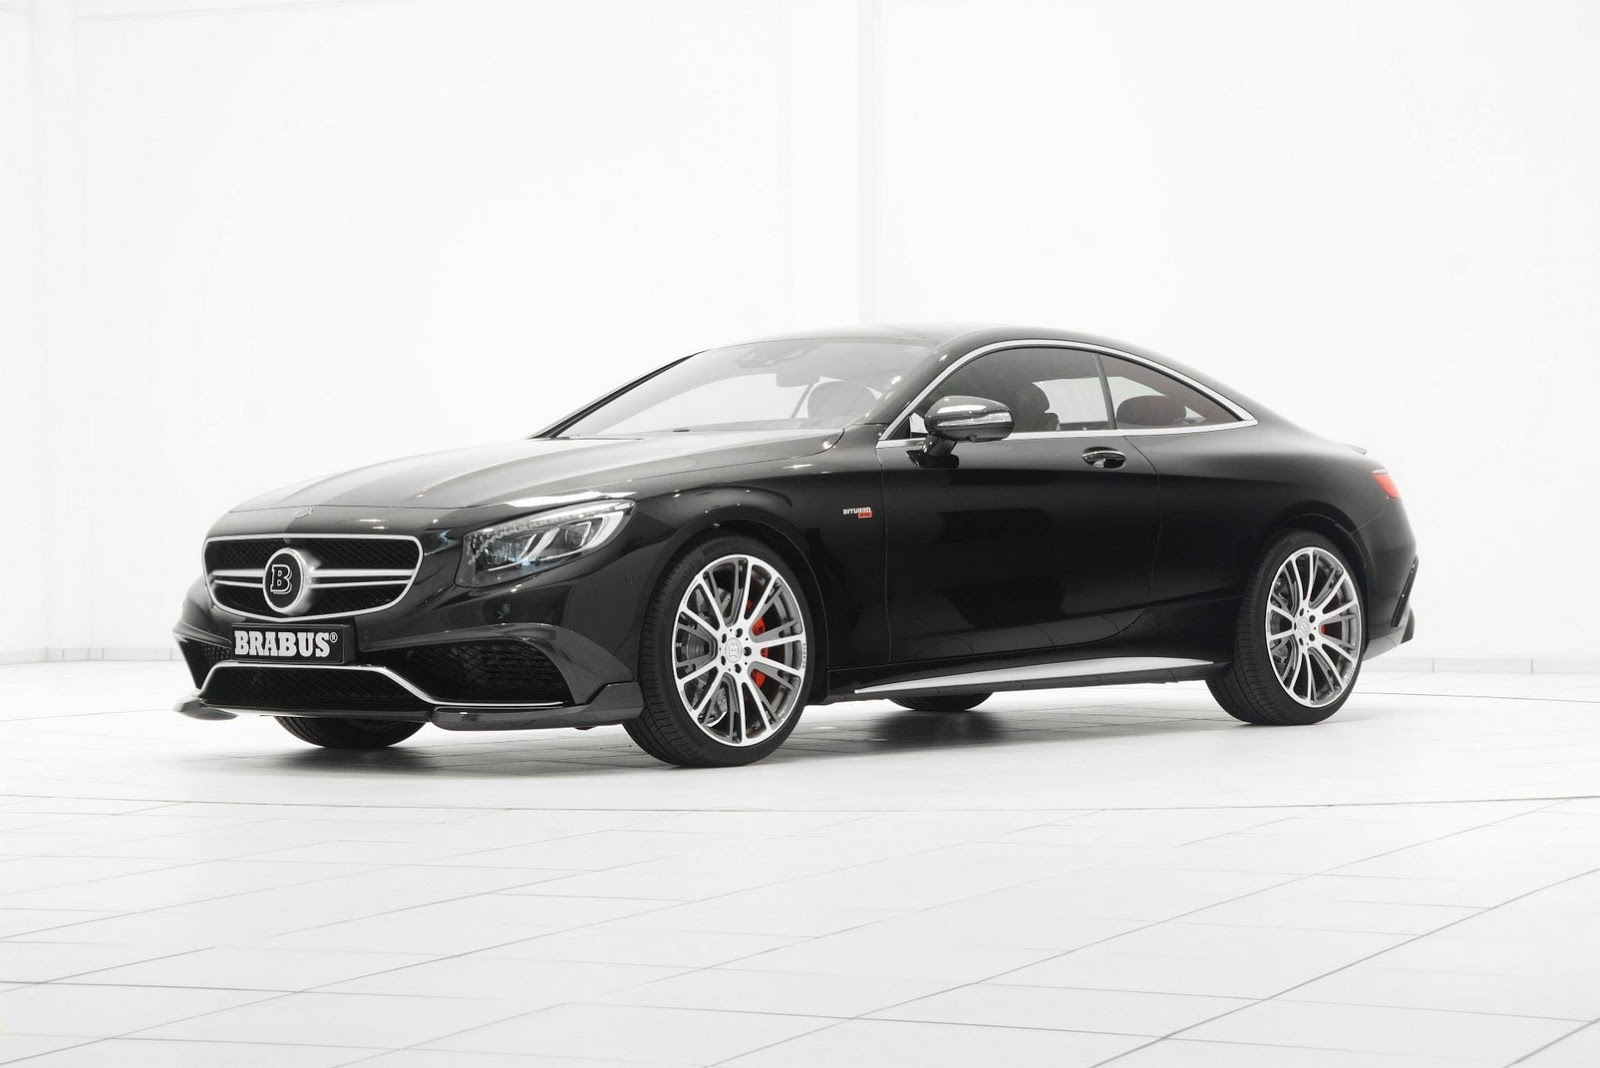 Brabus 850 Mercedes S63 AMG Coupe